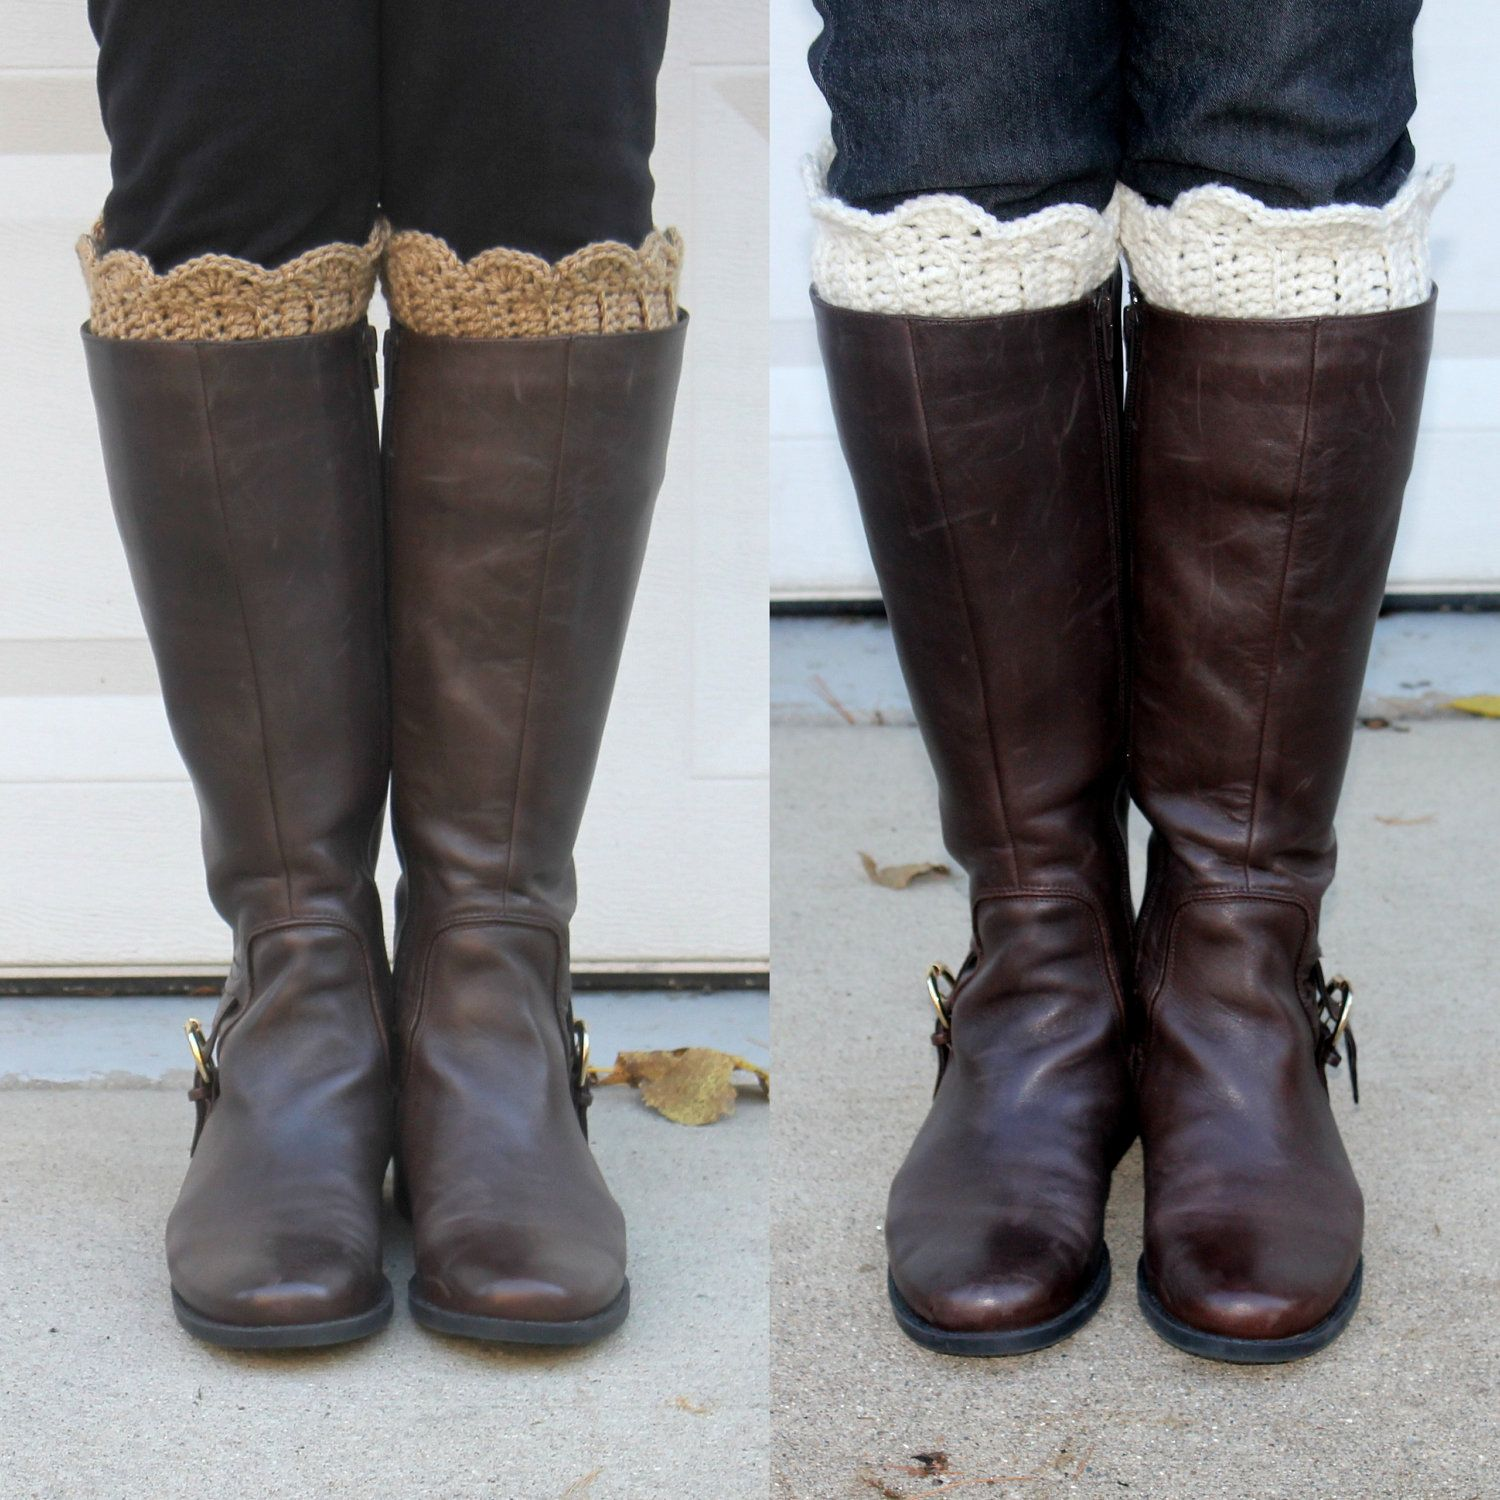 Crochet boot cuffs. Saw other boot cuffs with a flower attached too ...